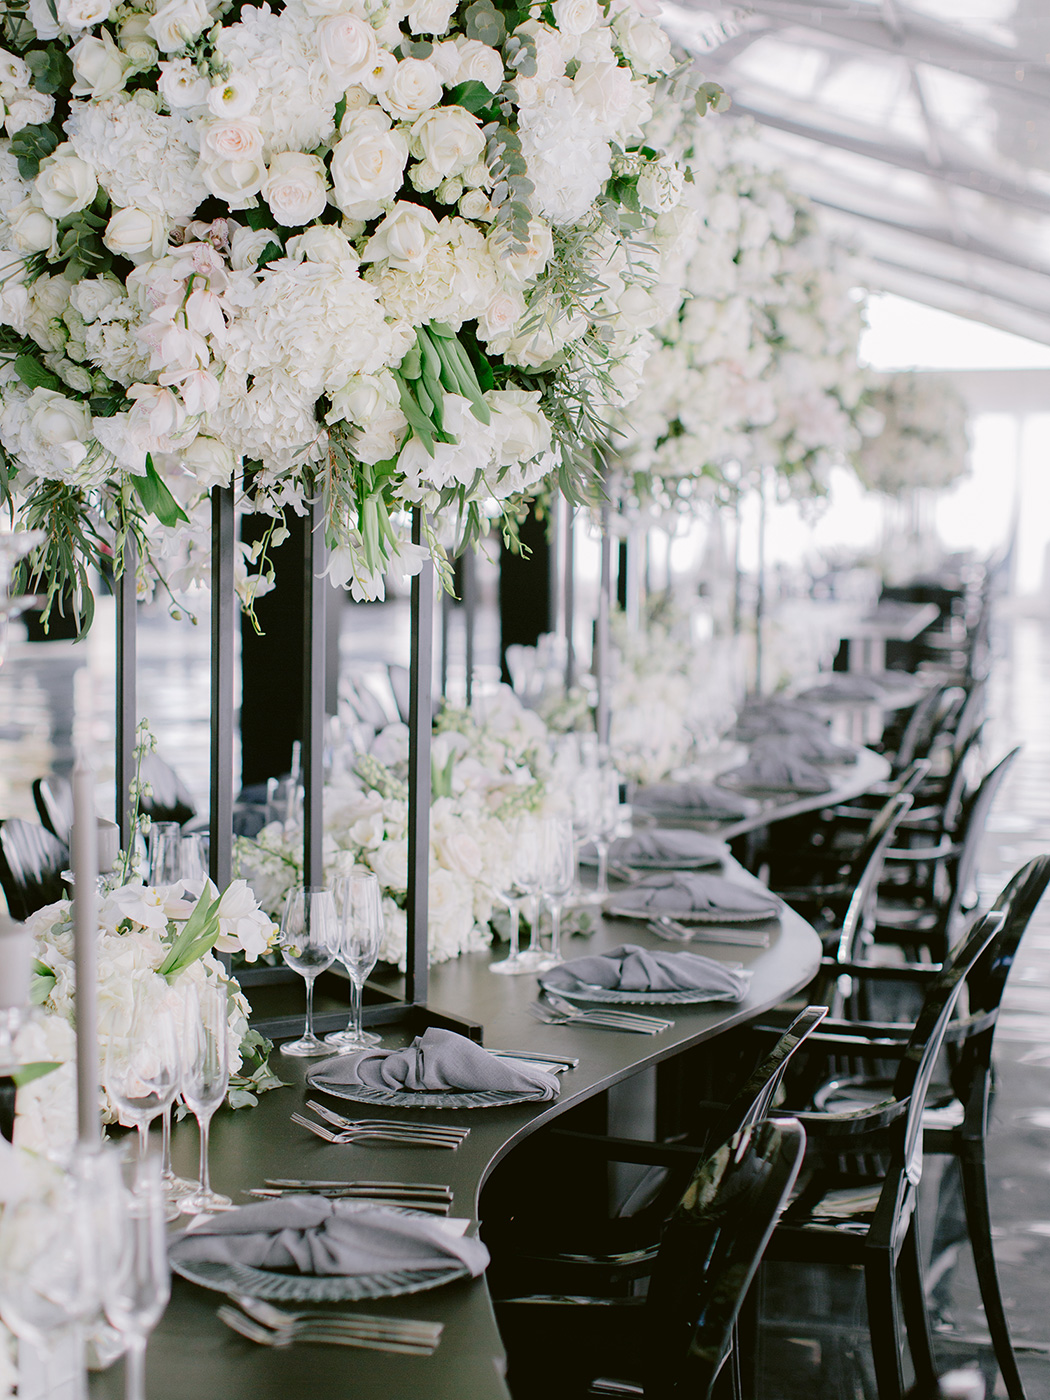 Wedding Decor | Rensche Mari Photography